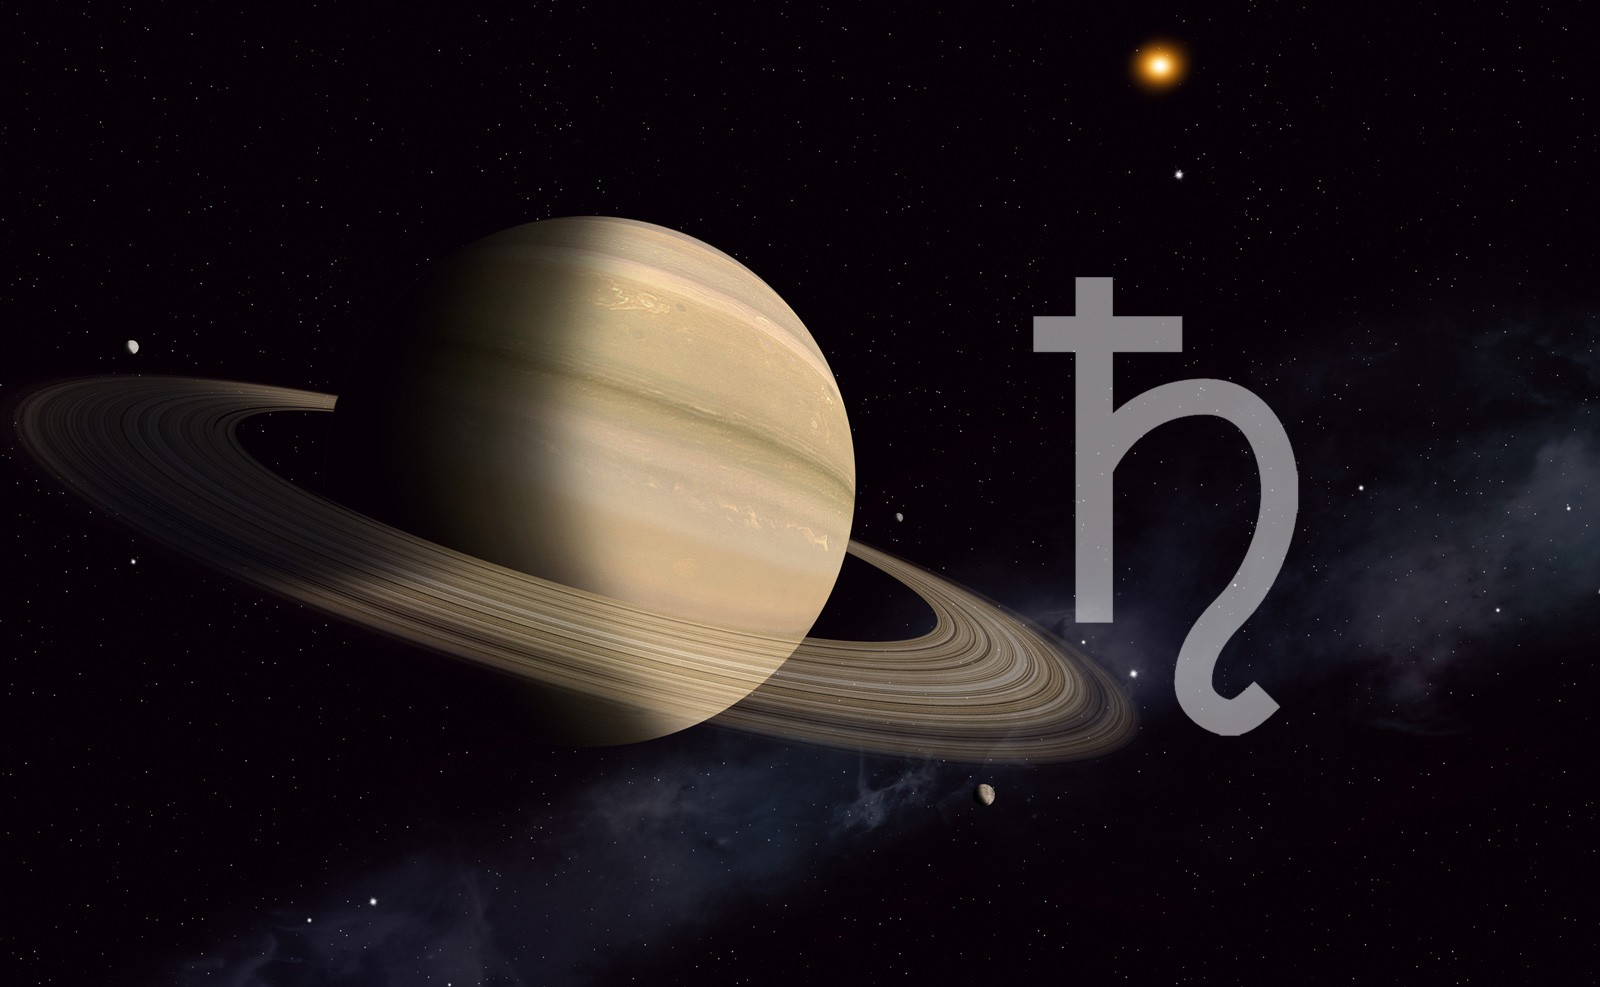 Saturn symbol meaning and planet meaning on whats your sign altavistaventures Images